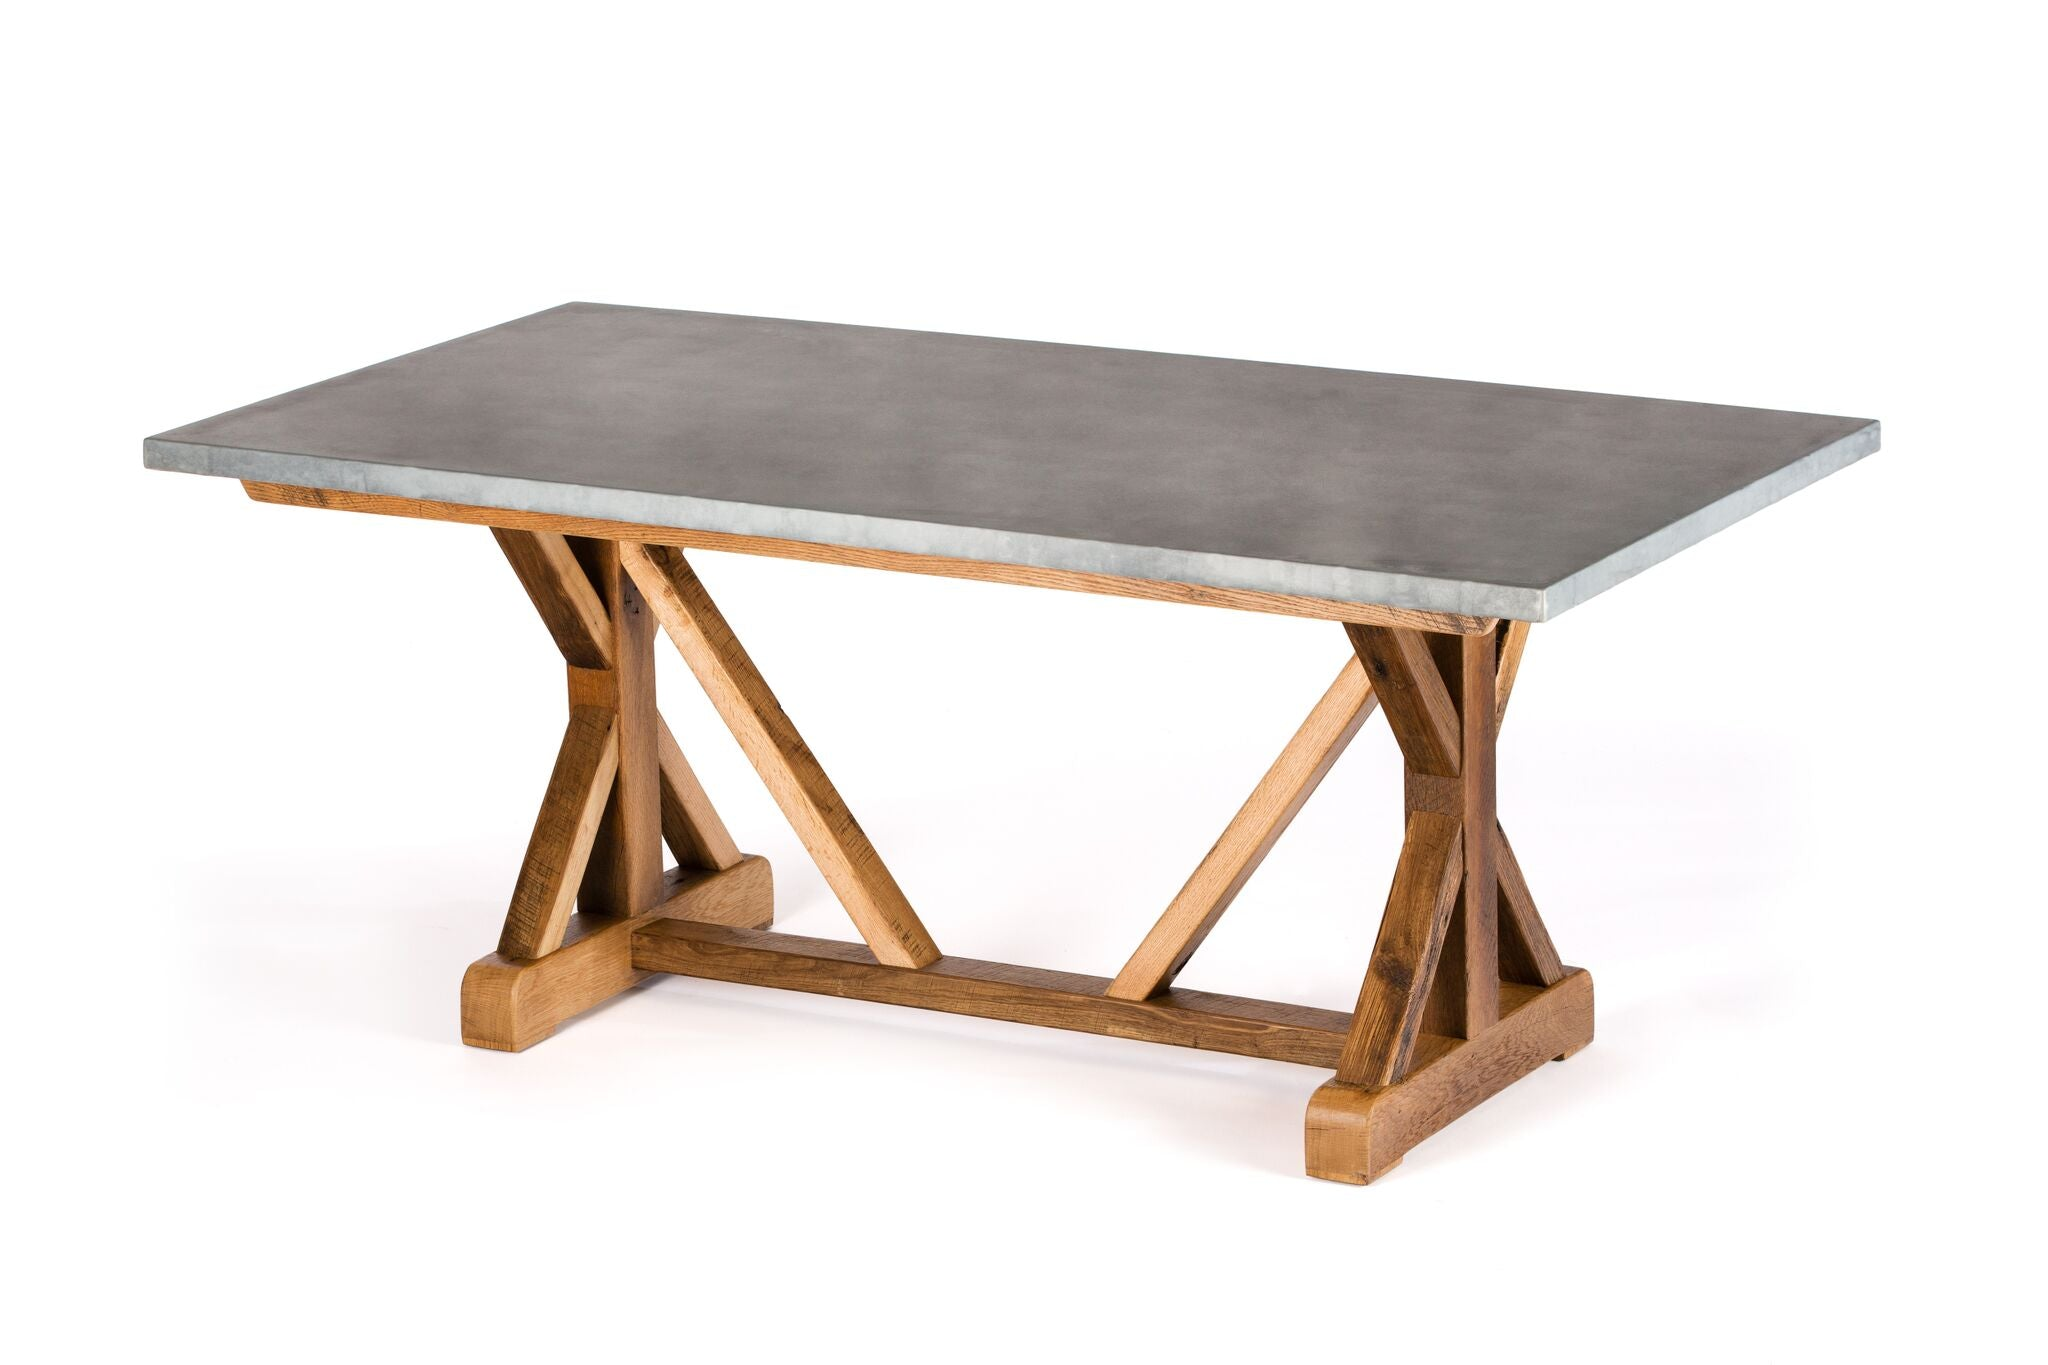 "Zinc Rectangular Table | French Trestle Table | CLASSIC | Weathered Grey on Reclaimed Oak | 108""L 40""W 30""H 